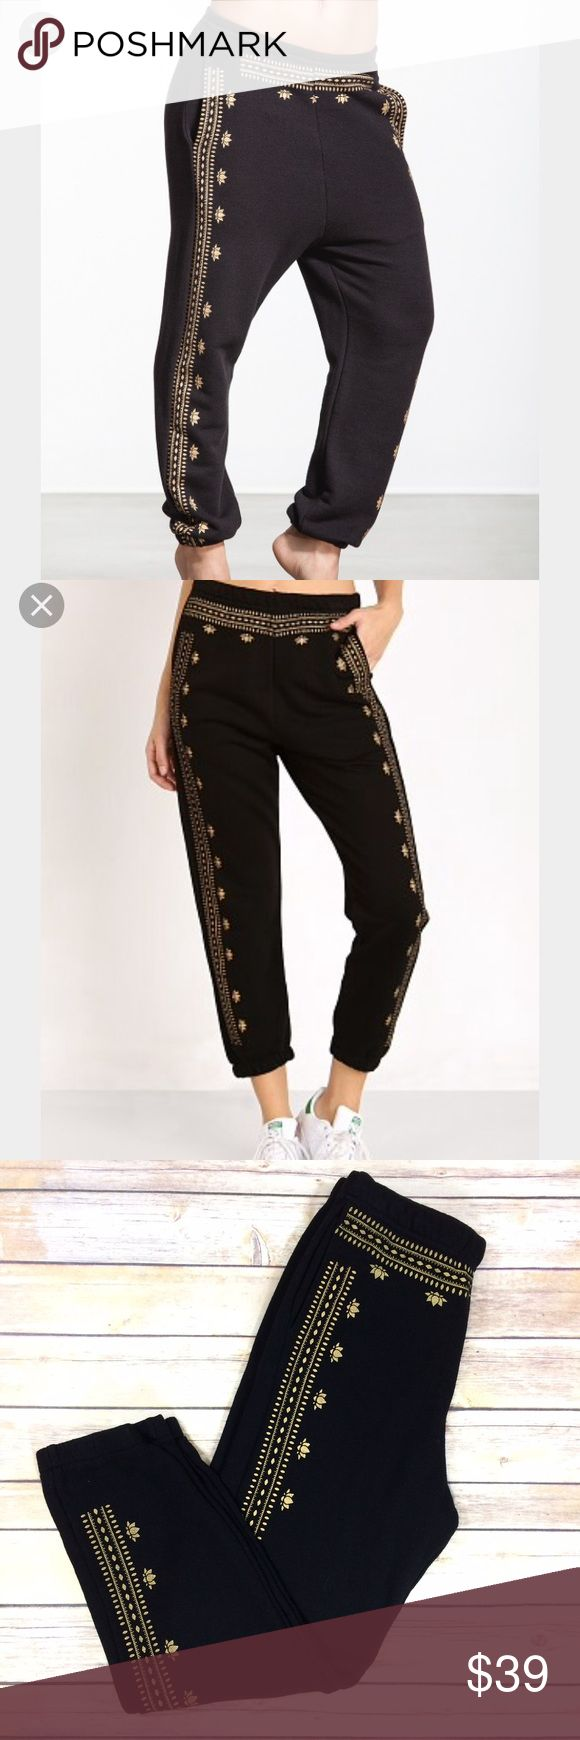 """Spiritual gangster Sz Small lotus harem sweatpants Gently used with light wash wear. Fabric content tag in photos. Across top of waist 12.5"""" inseam 22.5."""" K spiritual gangster Pants Track Pants & Joggers"""